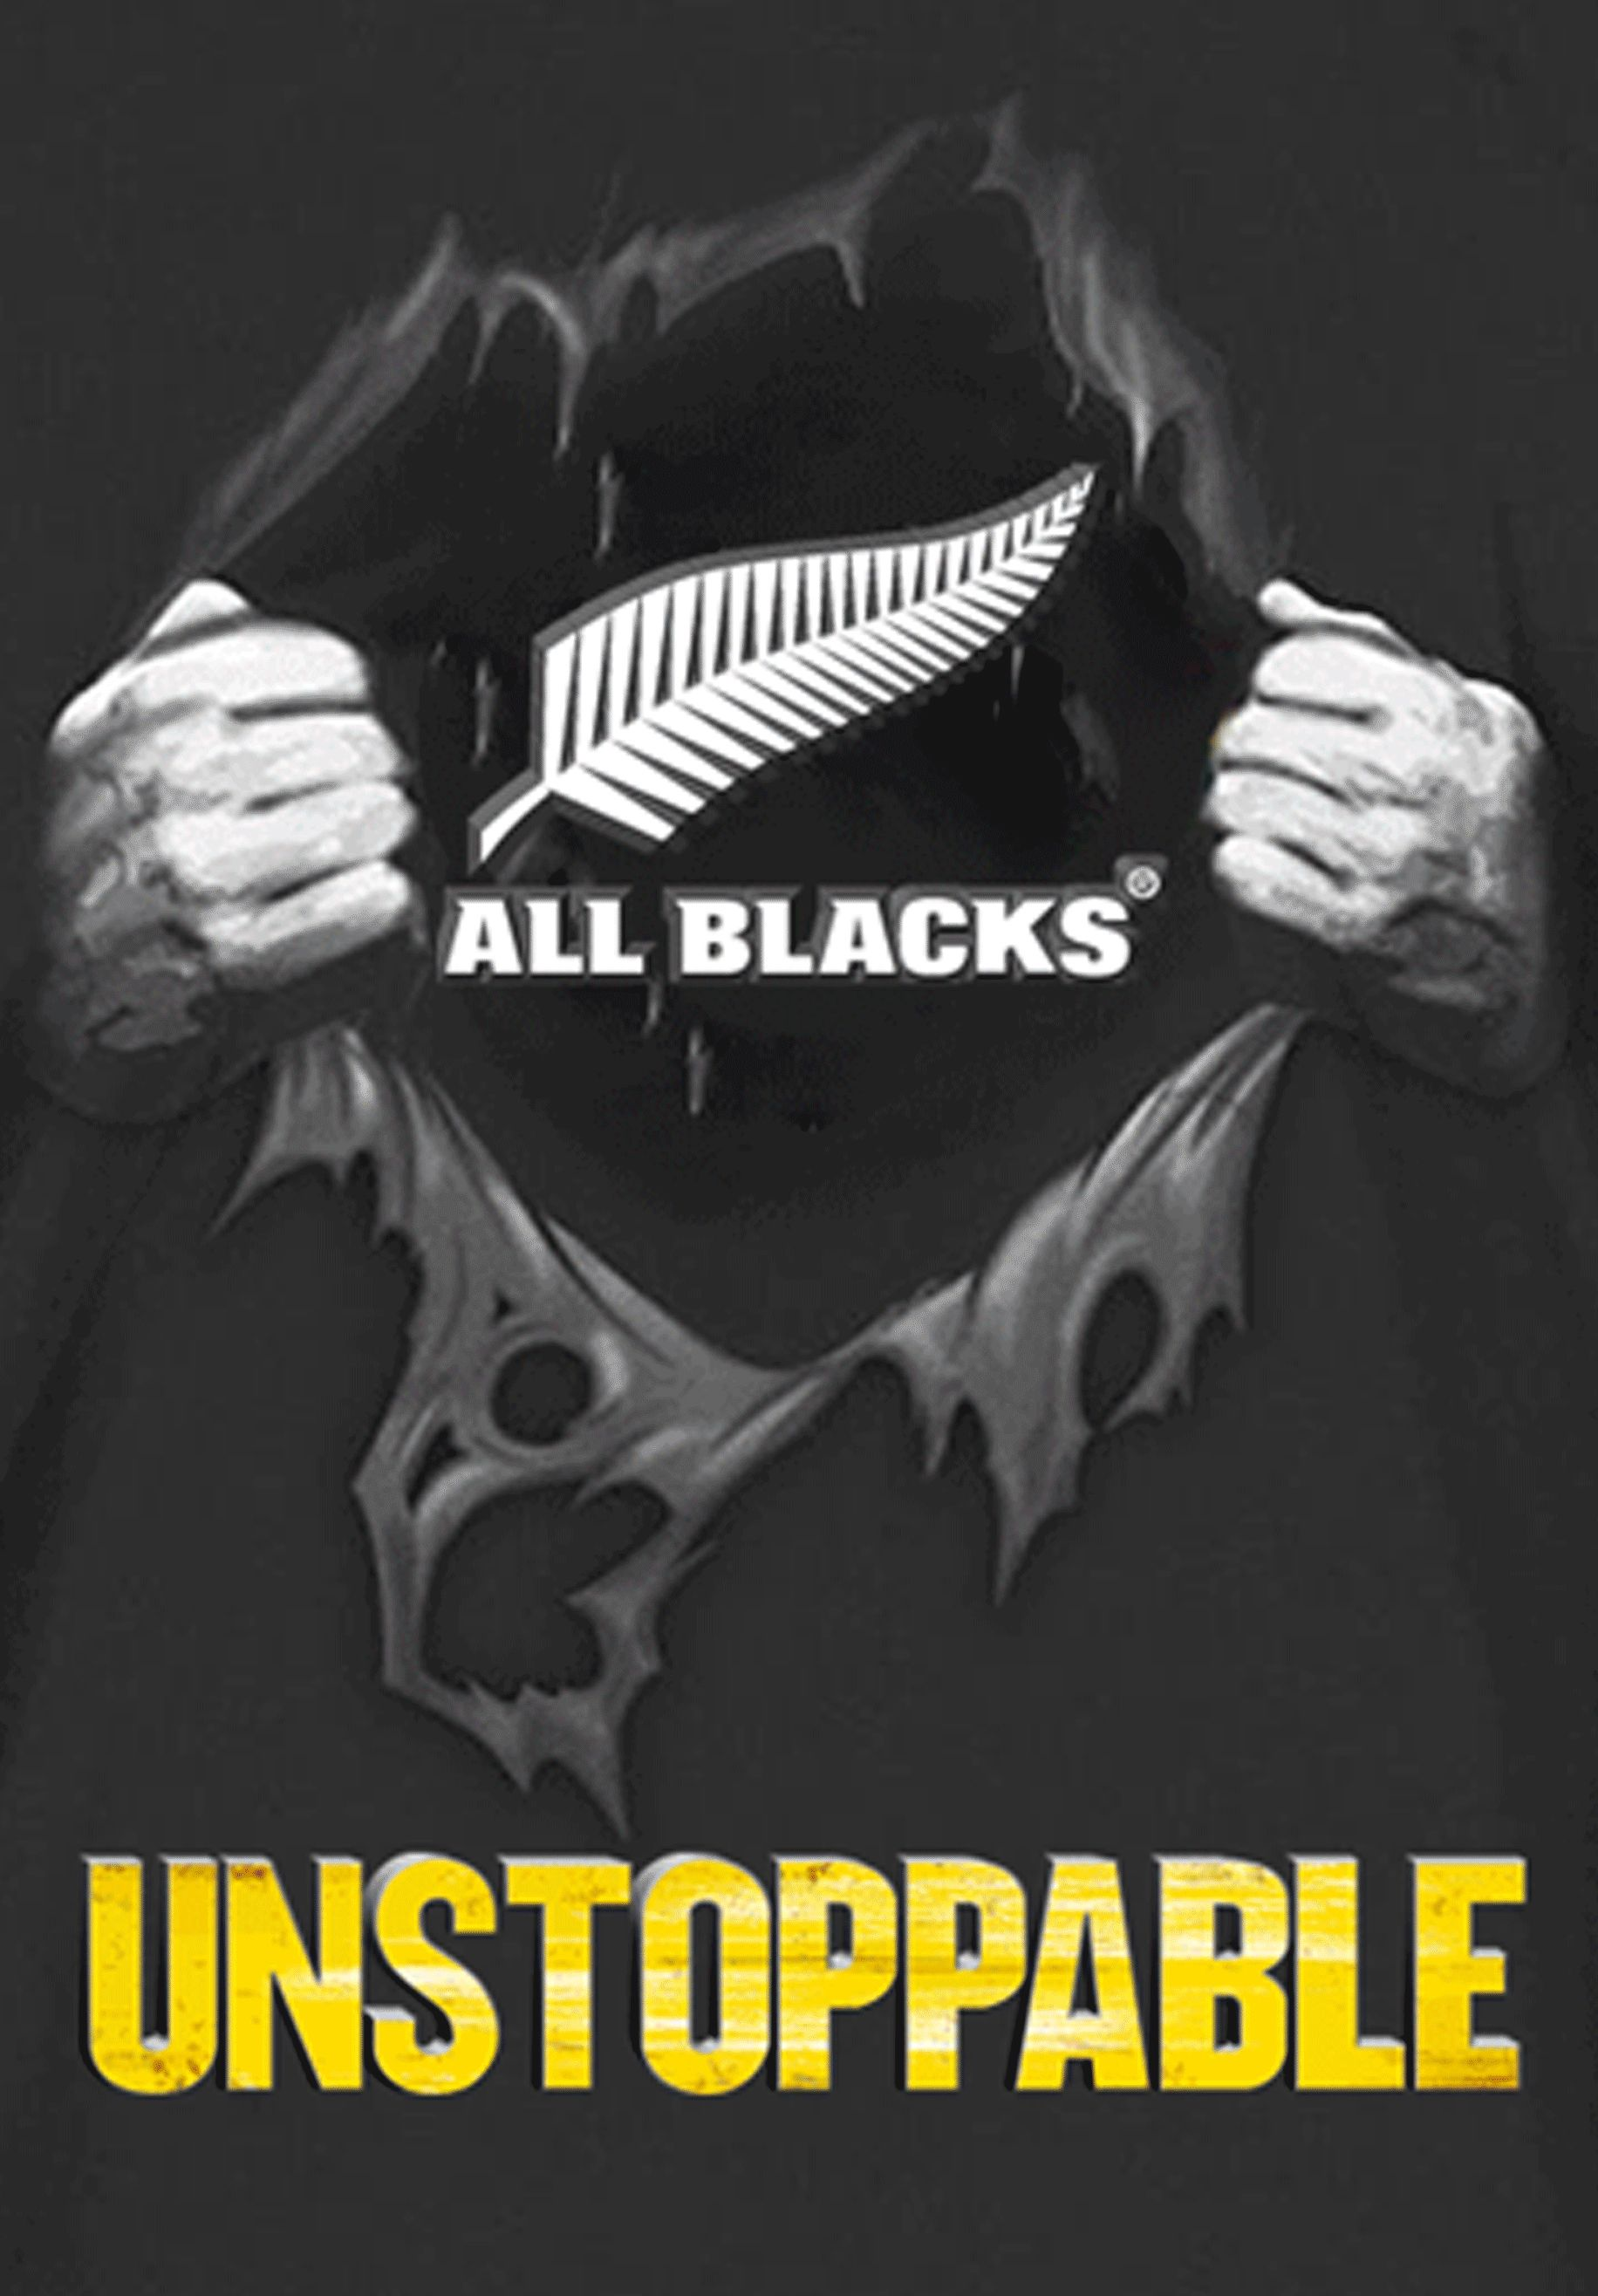 All Blacks Rugby Unstoppable Poster Created By Gordon Tunstall Usong Adobe Photoshop 2016 All Blacks Rugby All Blacks All Blacks Rugby Team